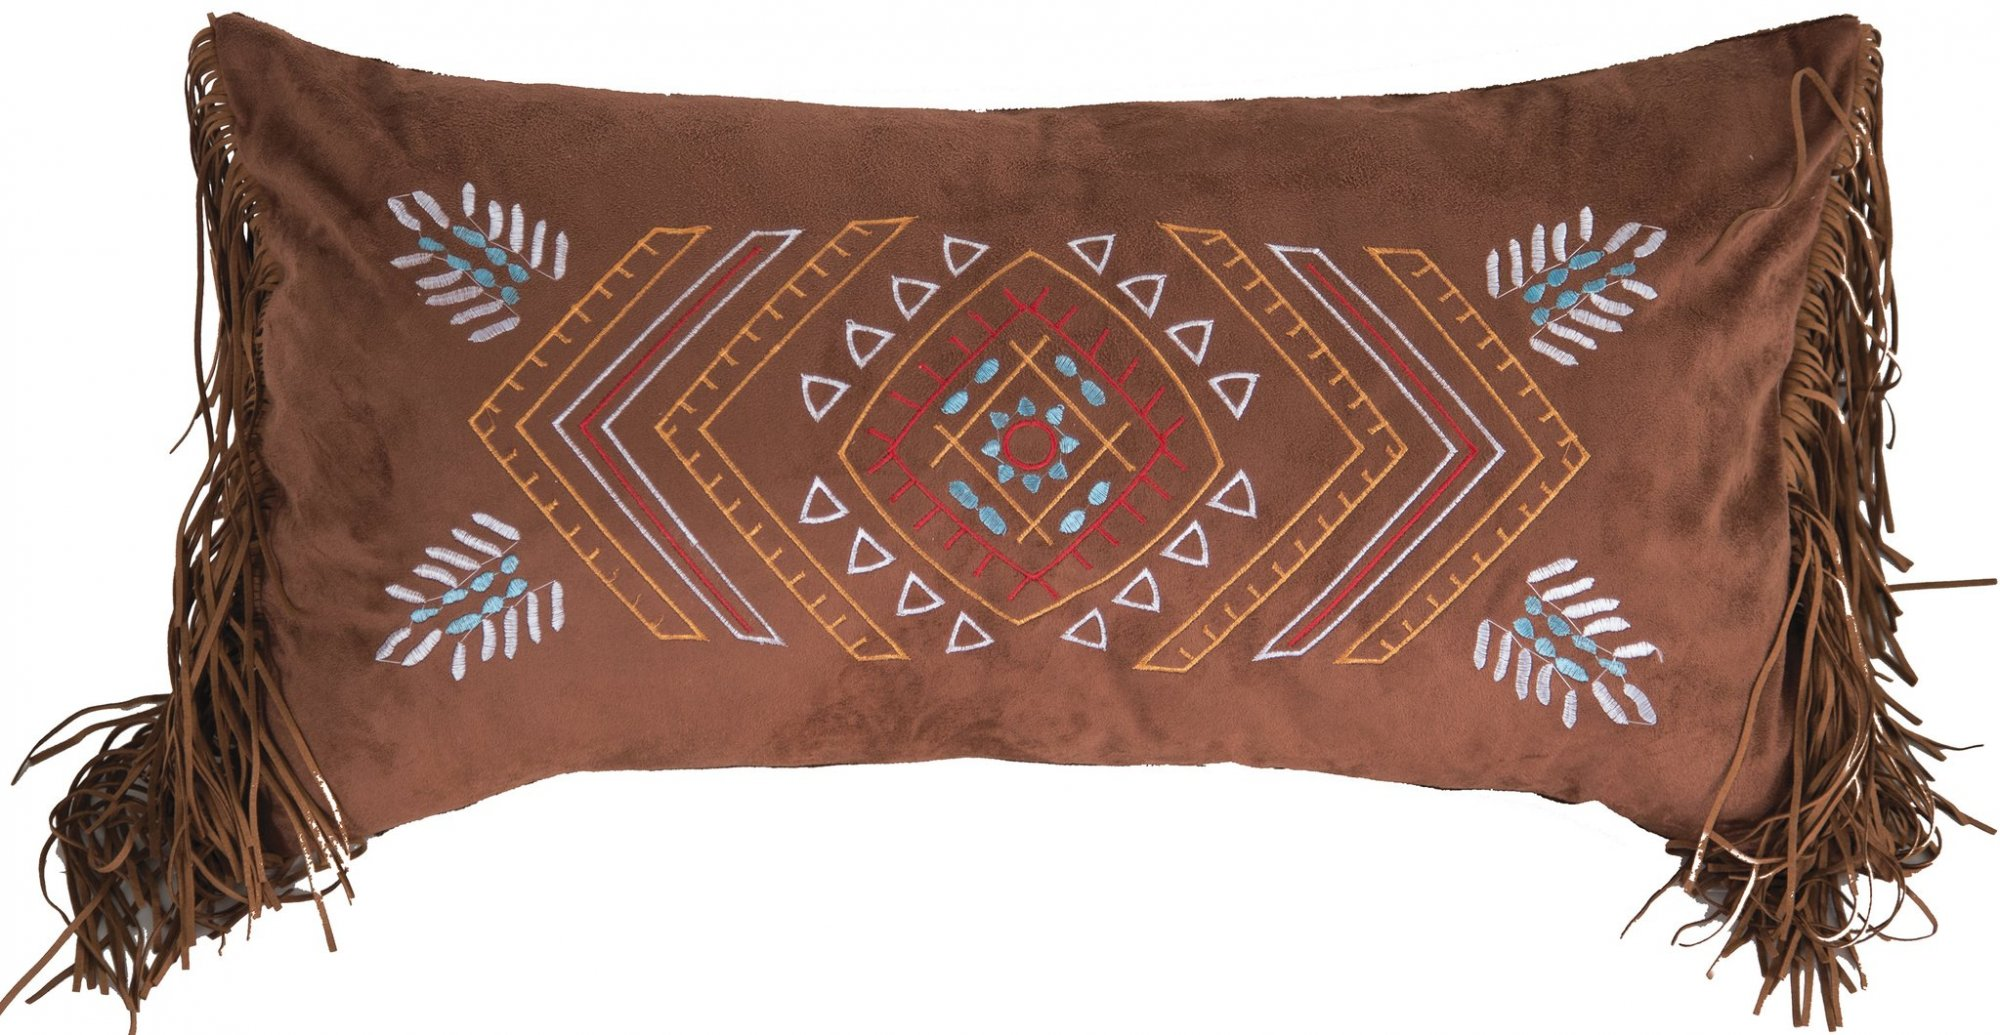 Wrangler Embroidered SW PILLOW